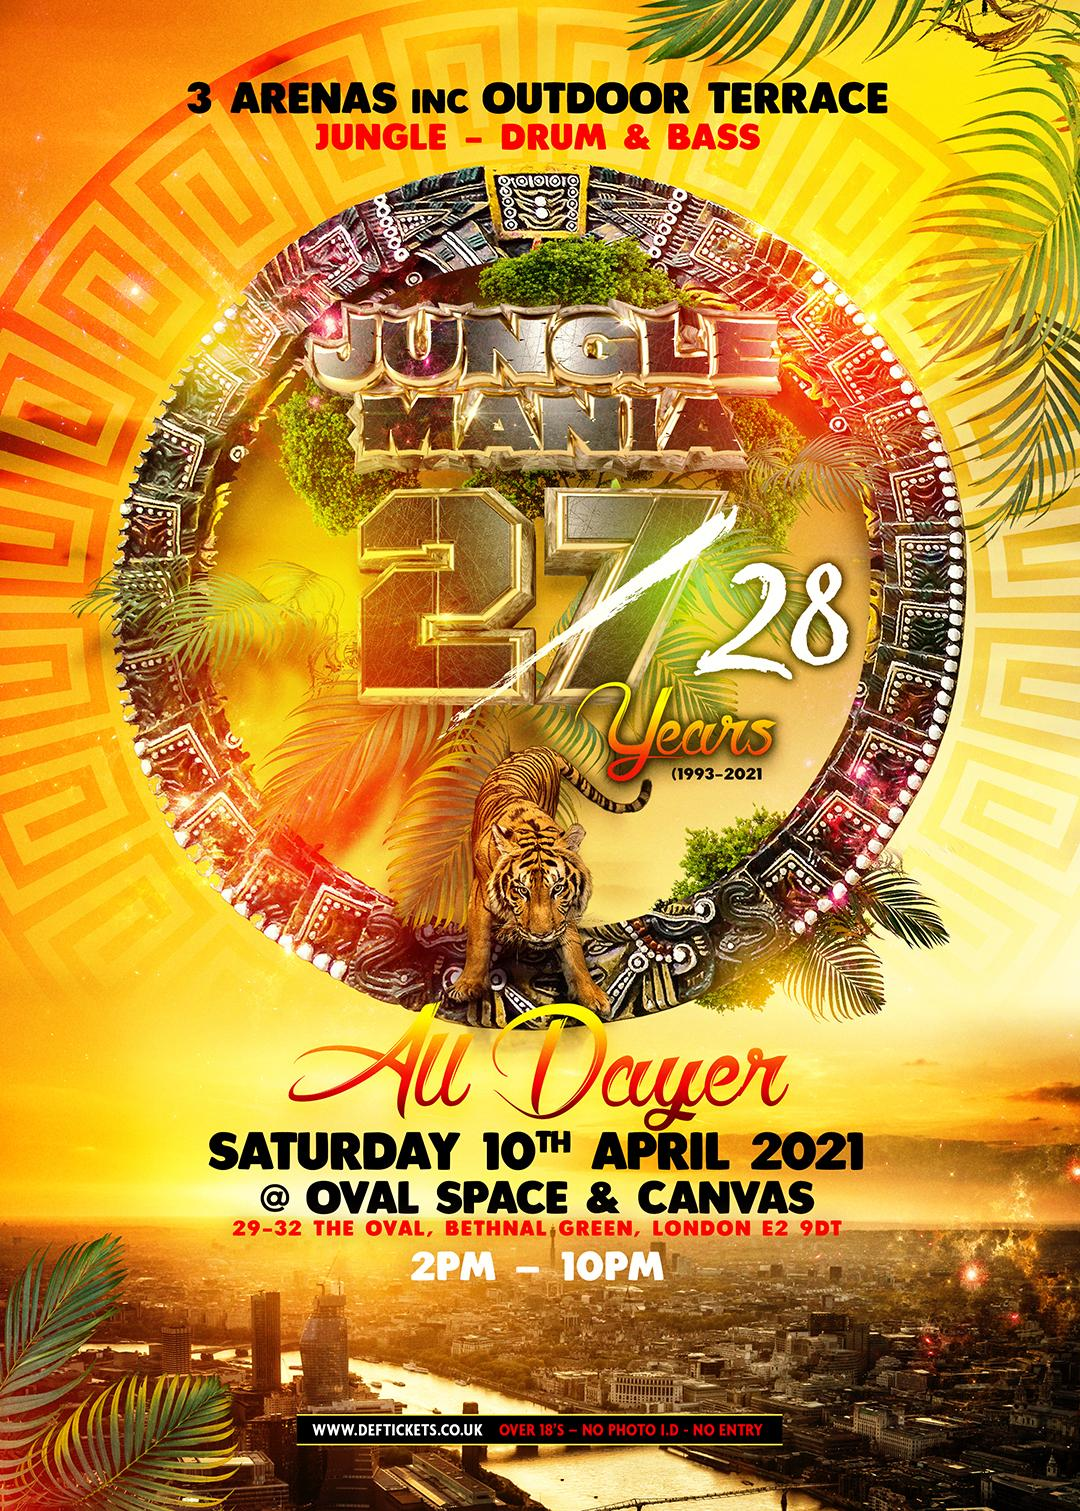 1287444_1_27-28-years-of-jungle-mania-all-dayer_eflyer